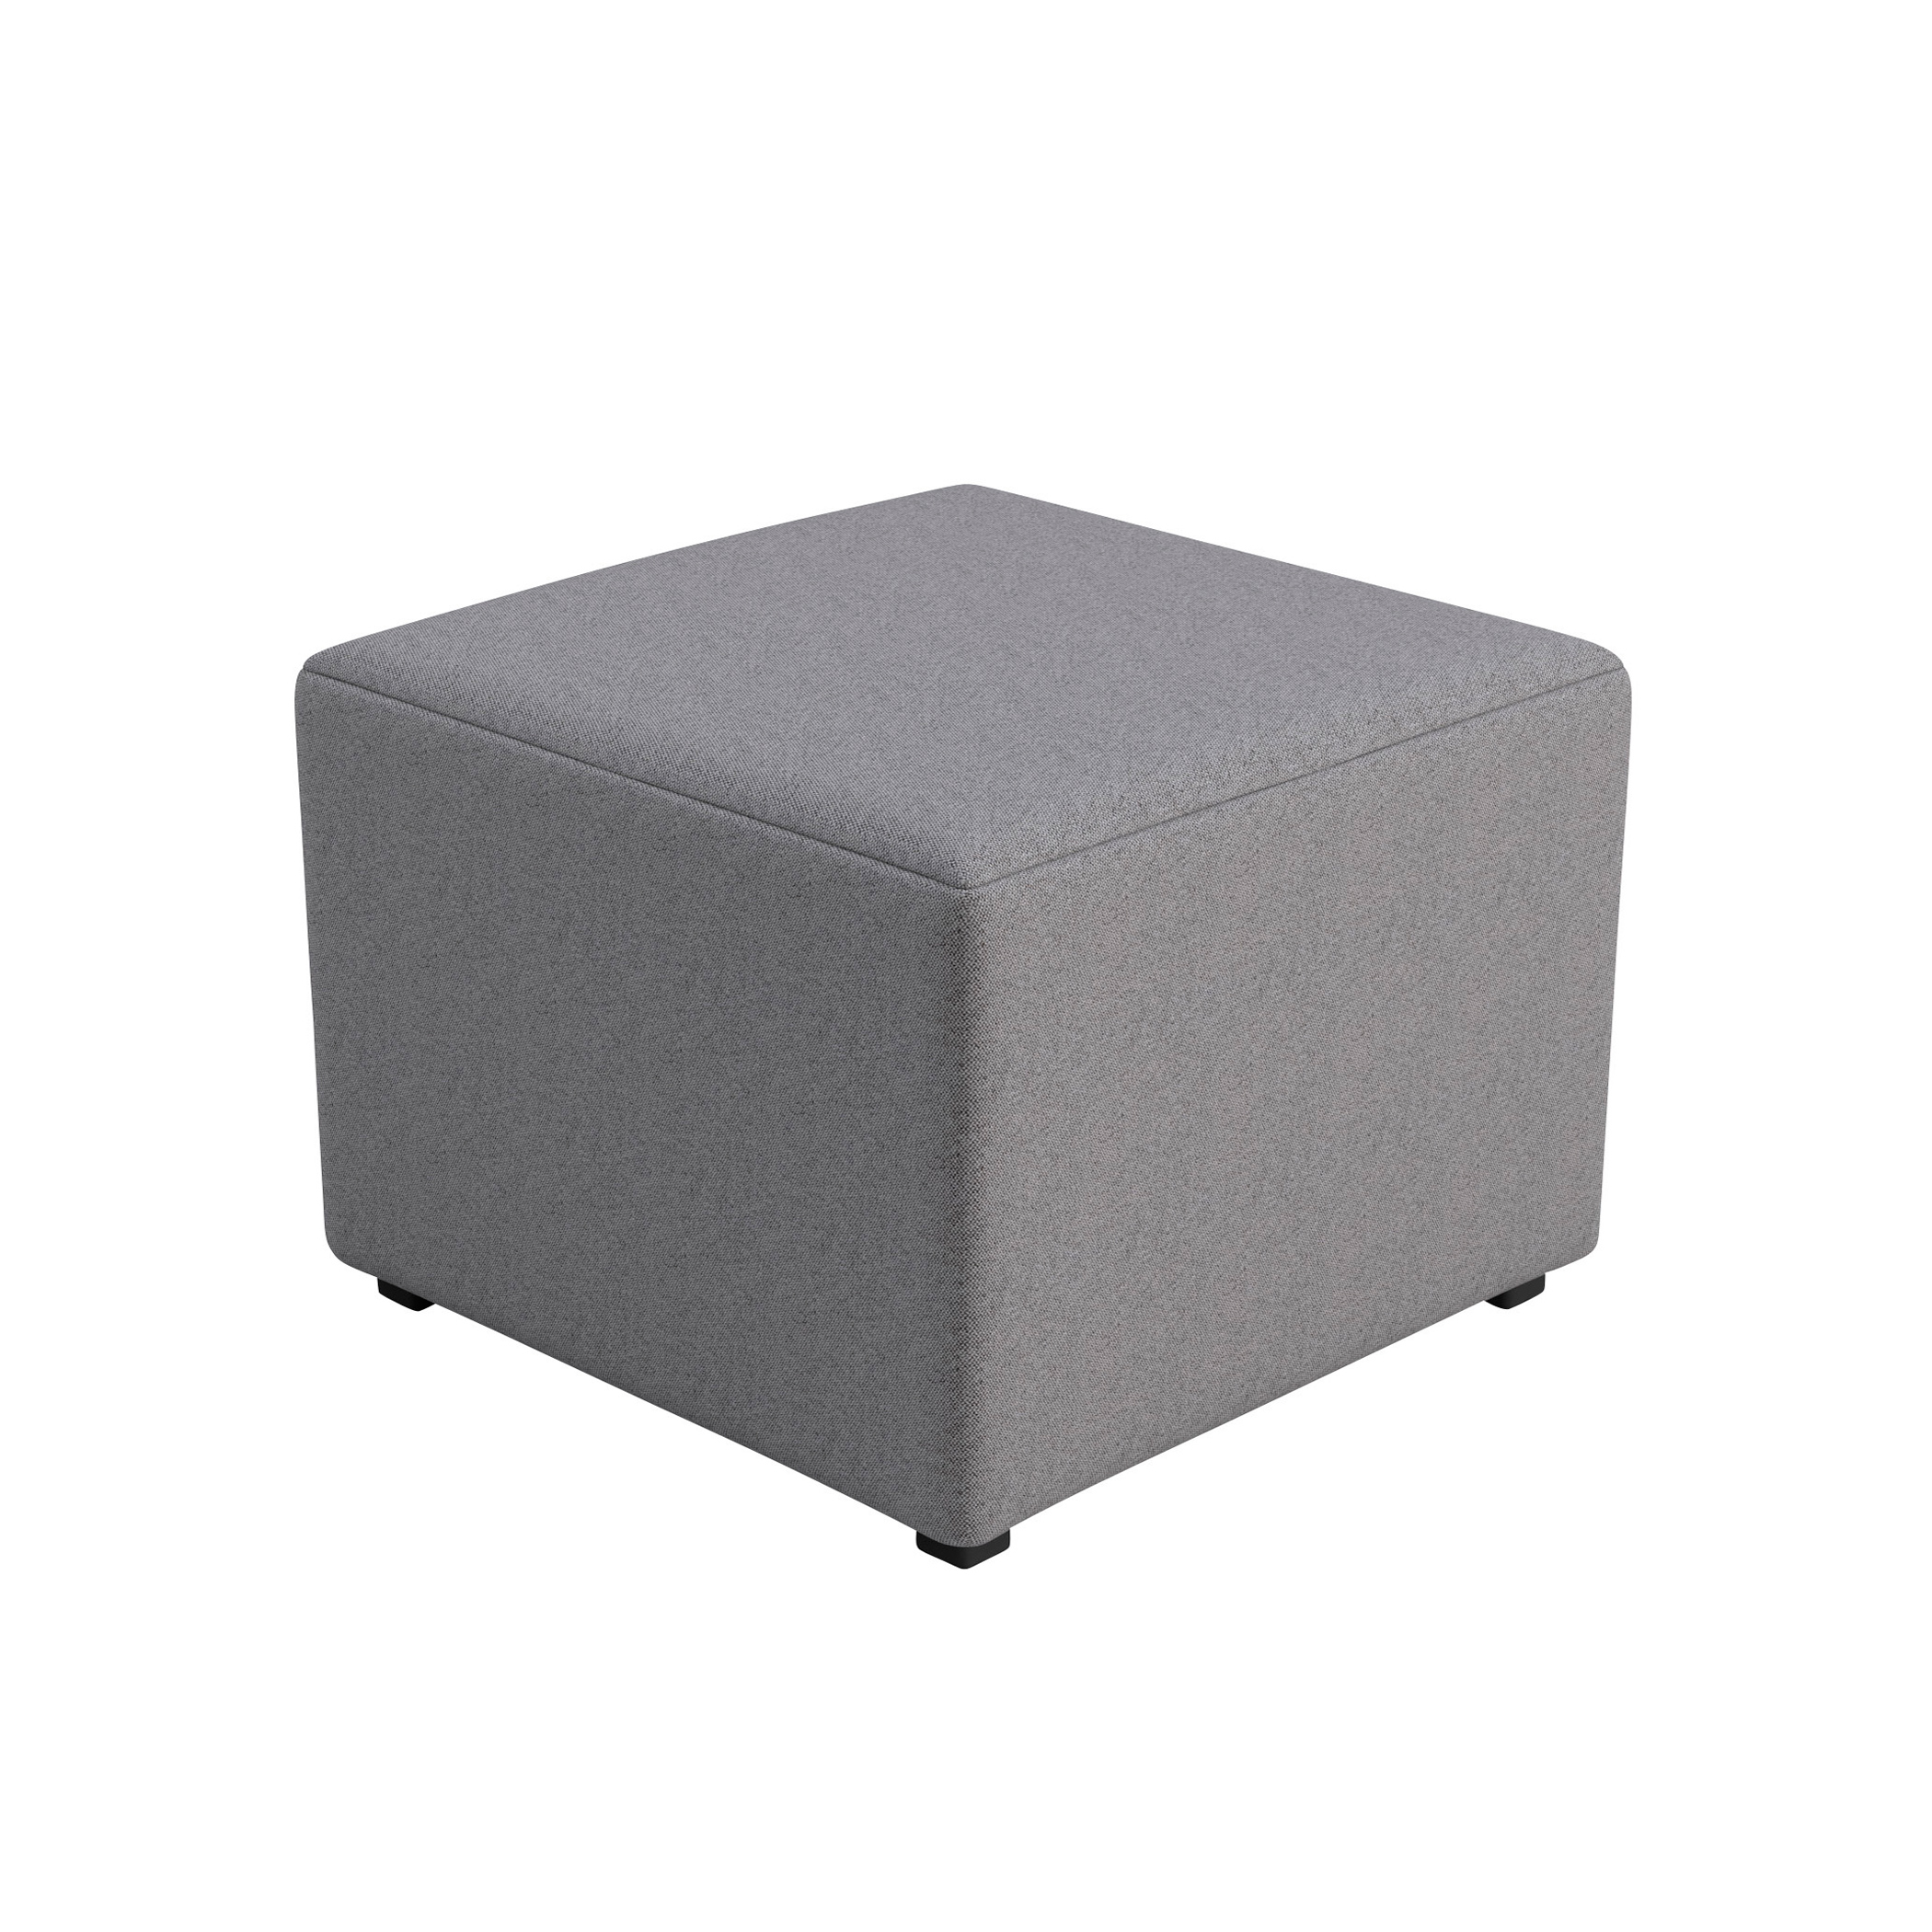 nail free trim square shipping block hugo contemporary and jet product turned legs furniture mjl with overstock garden today ottoman head upholstered fabric home